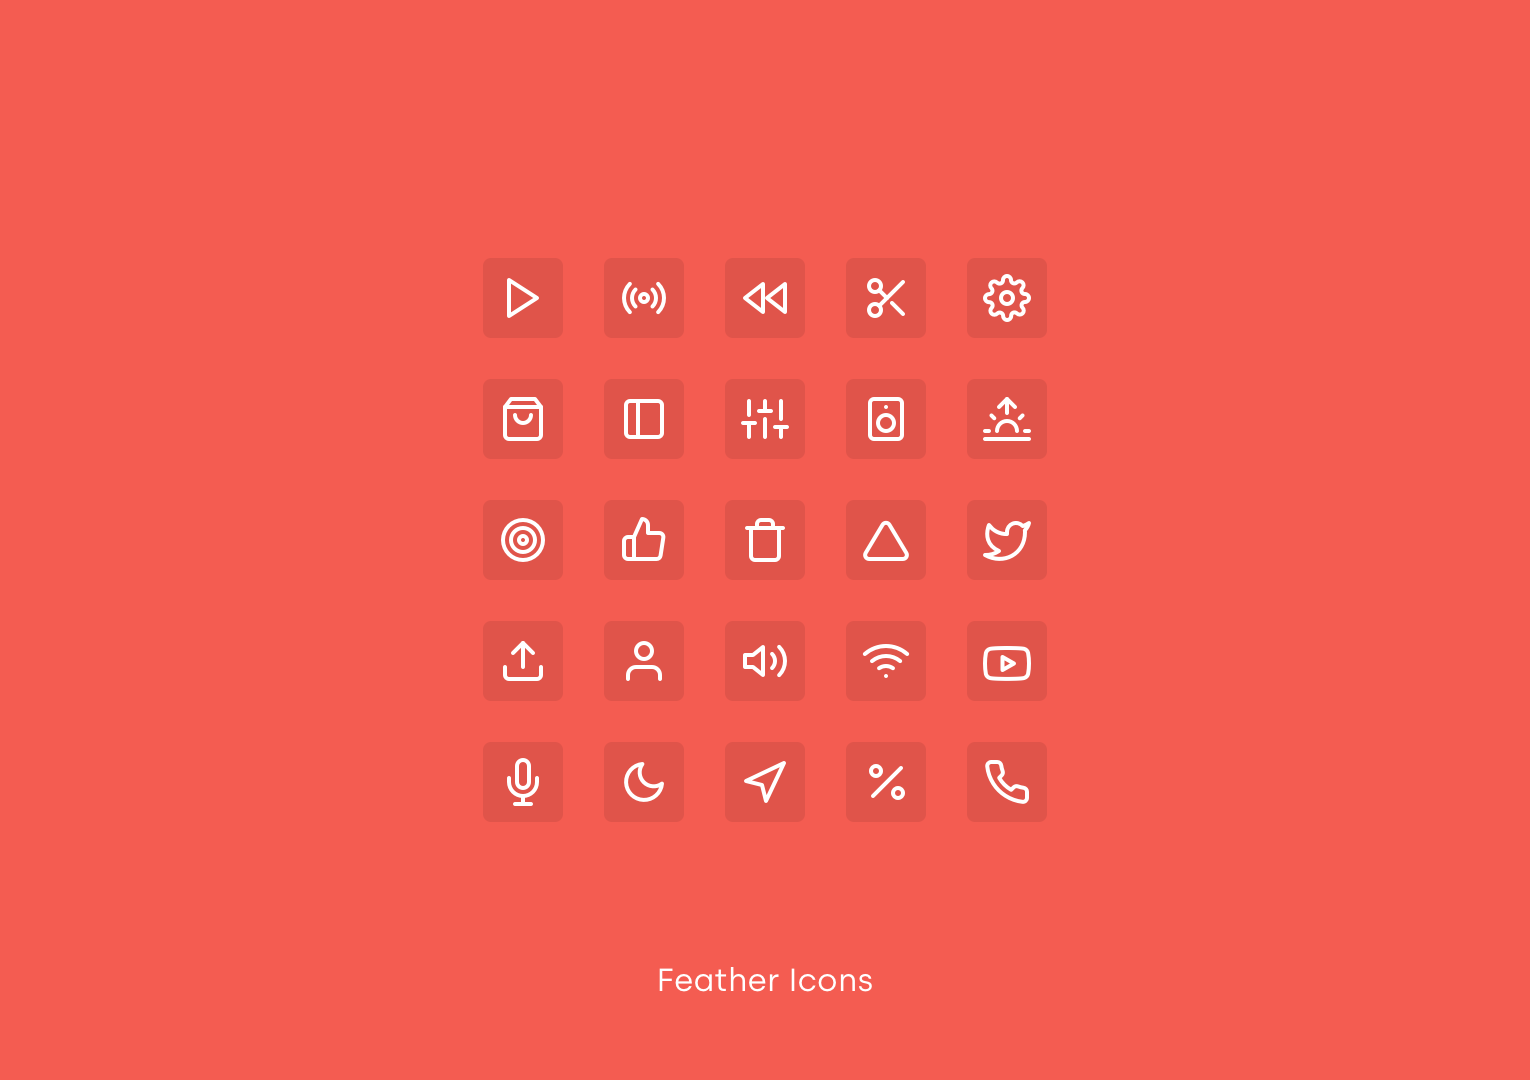 Feather Icons by Cole Bemis